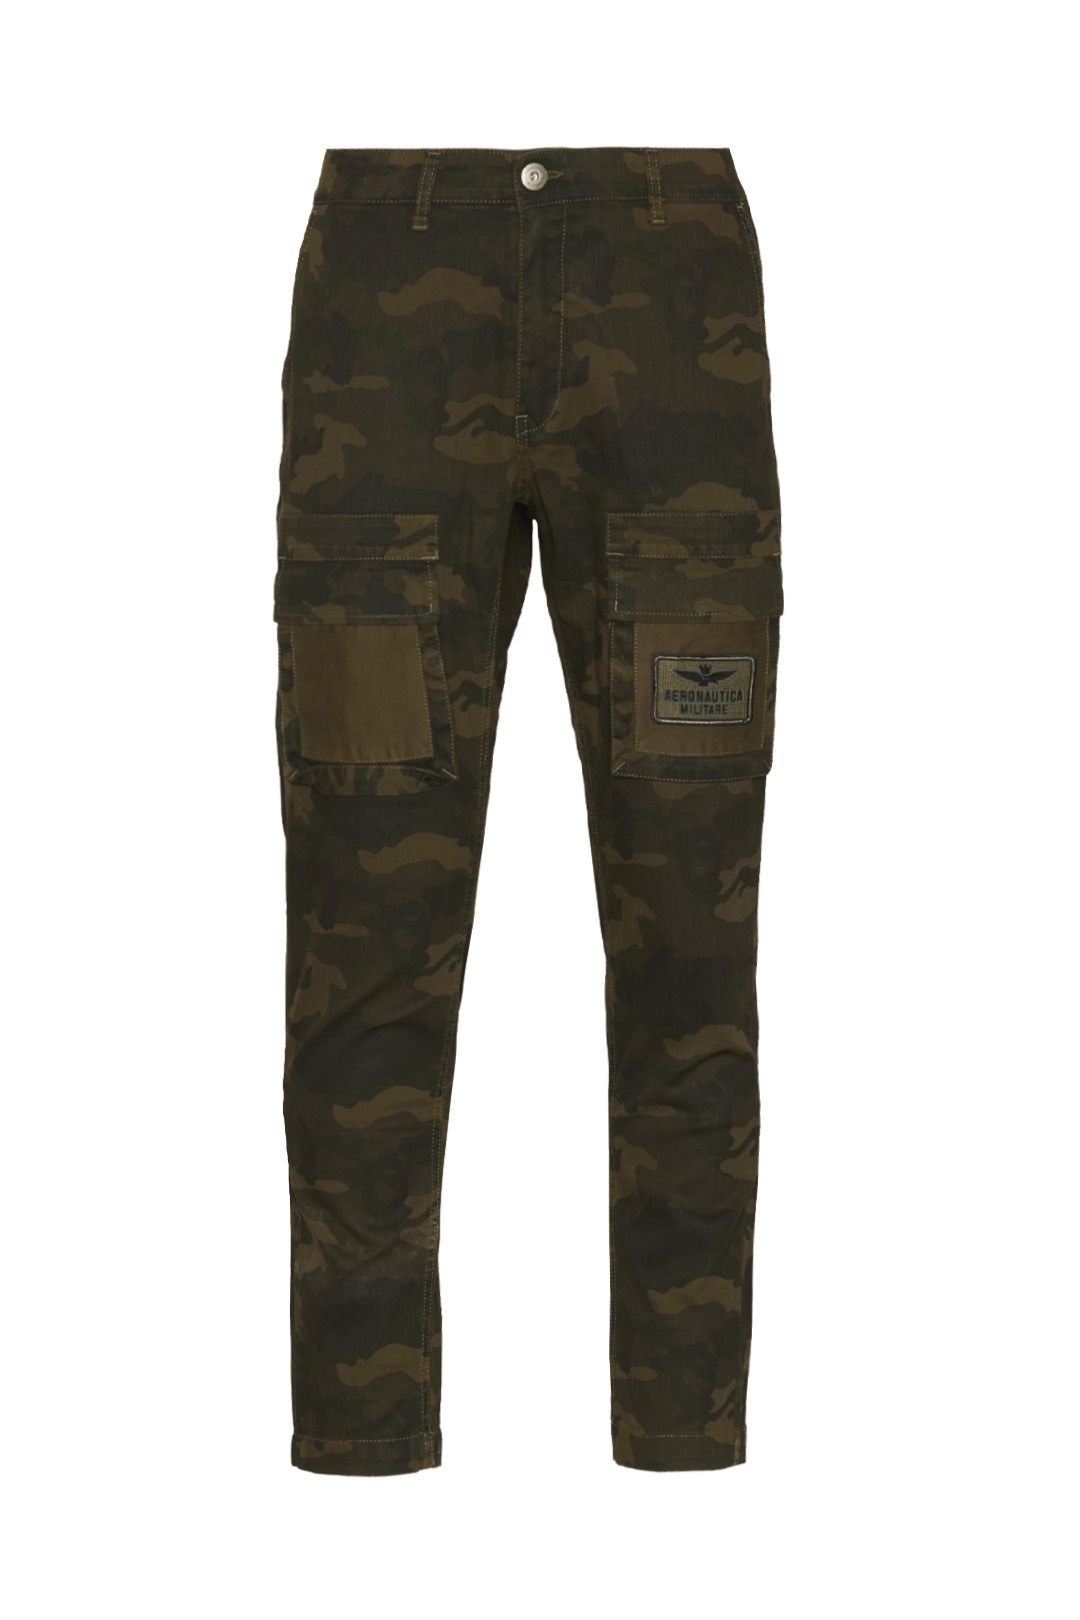 Multi-pockets camouflage trousers